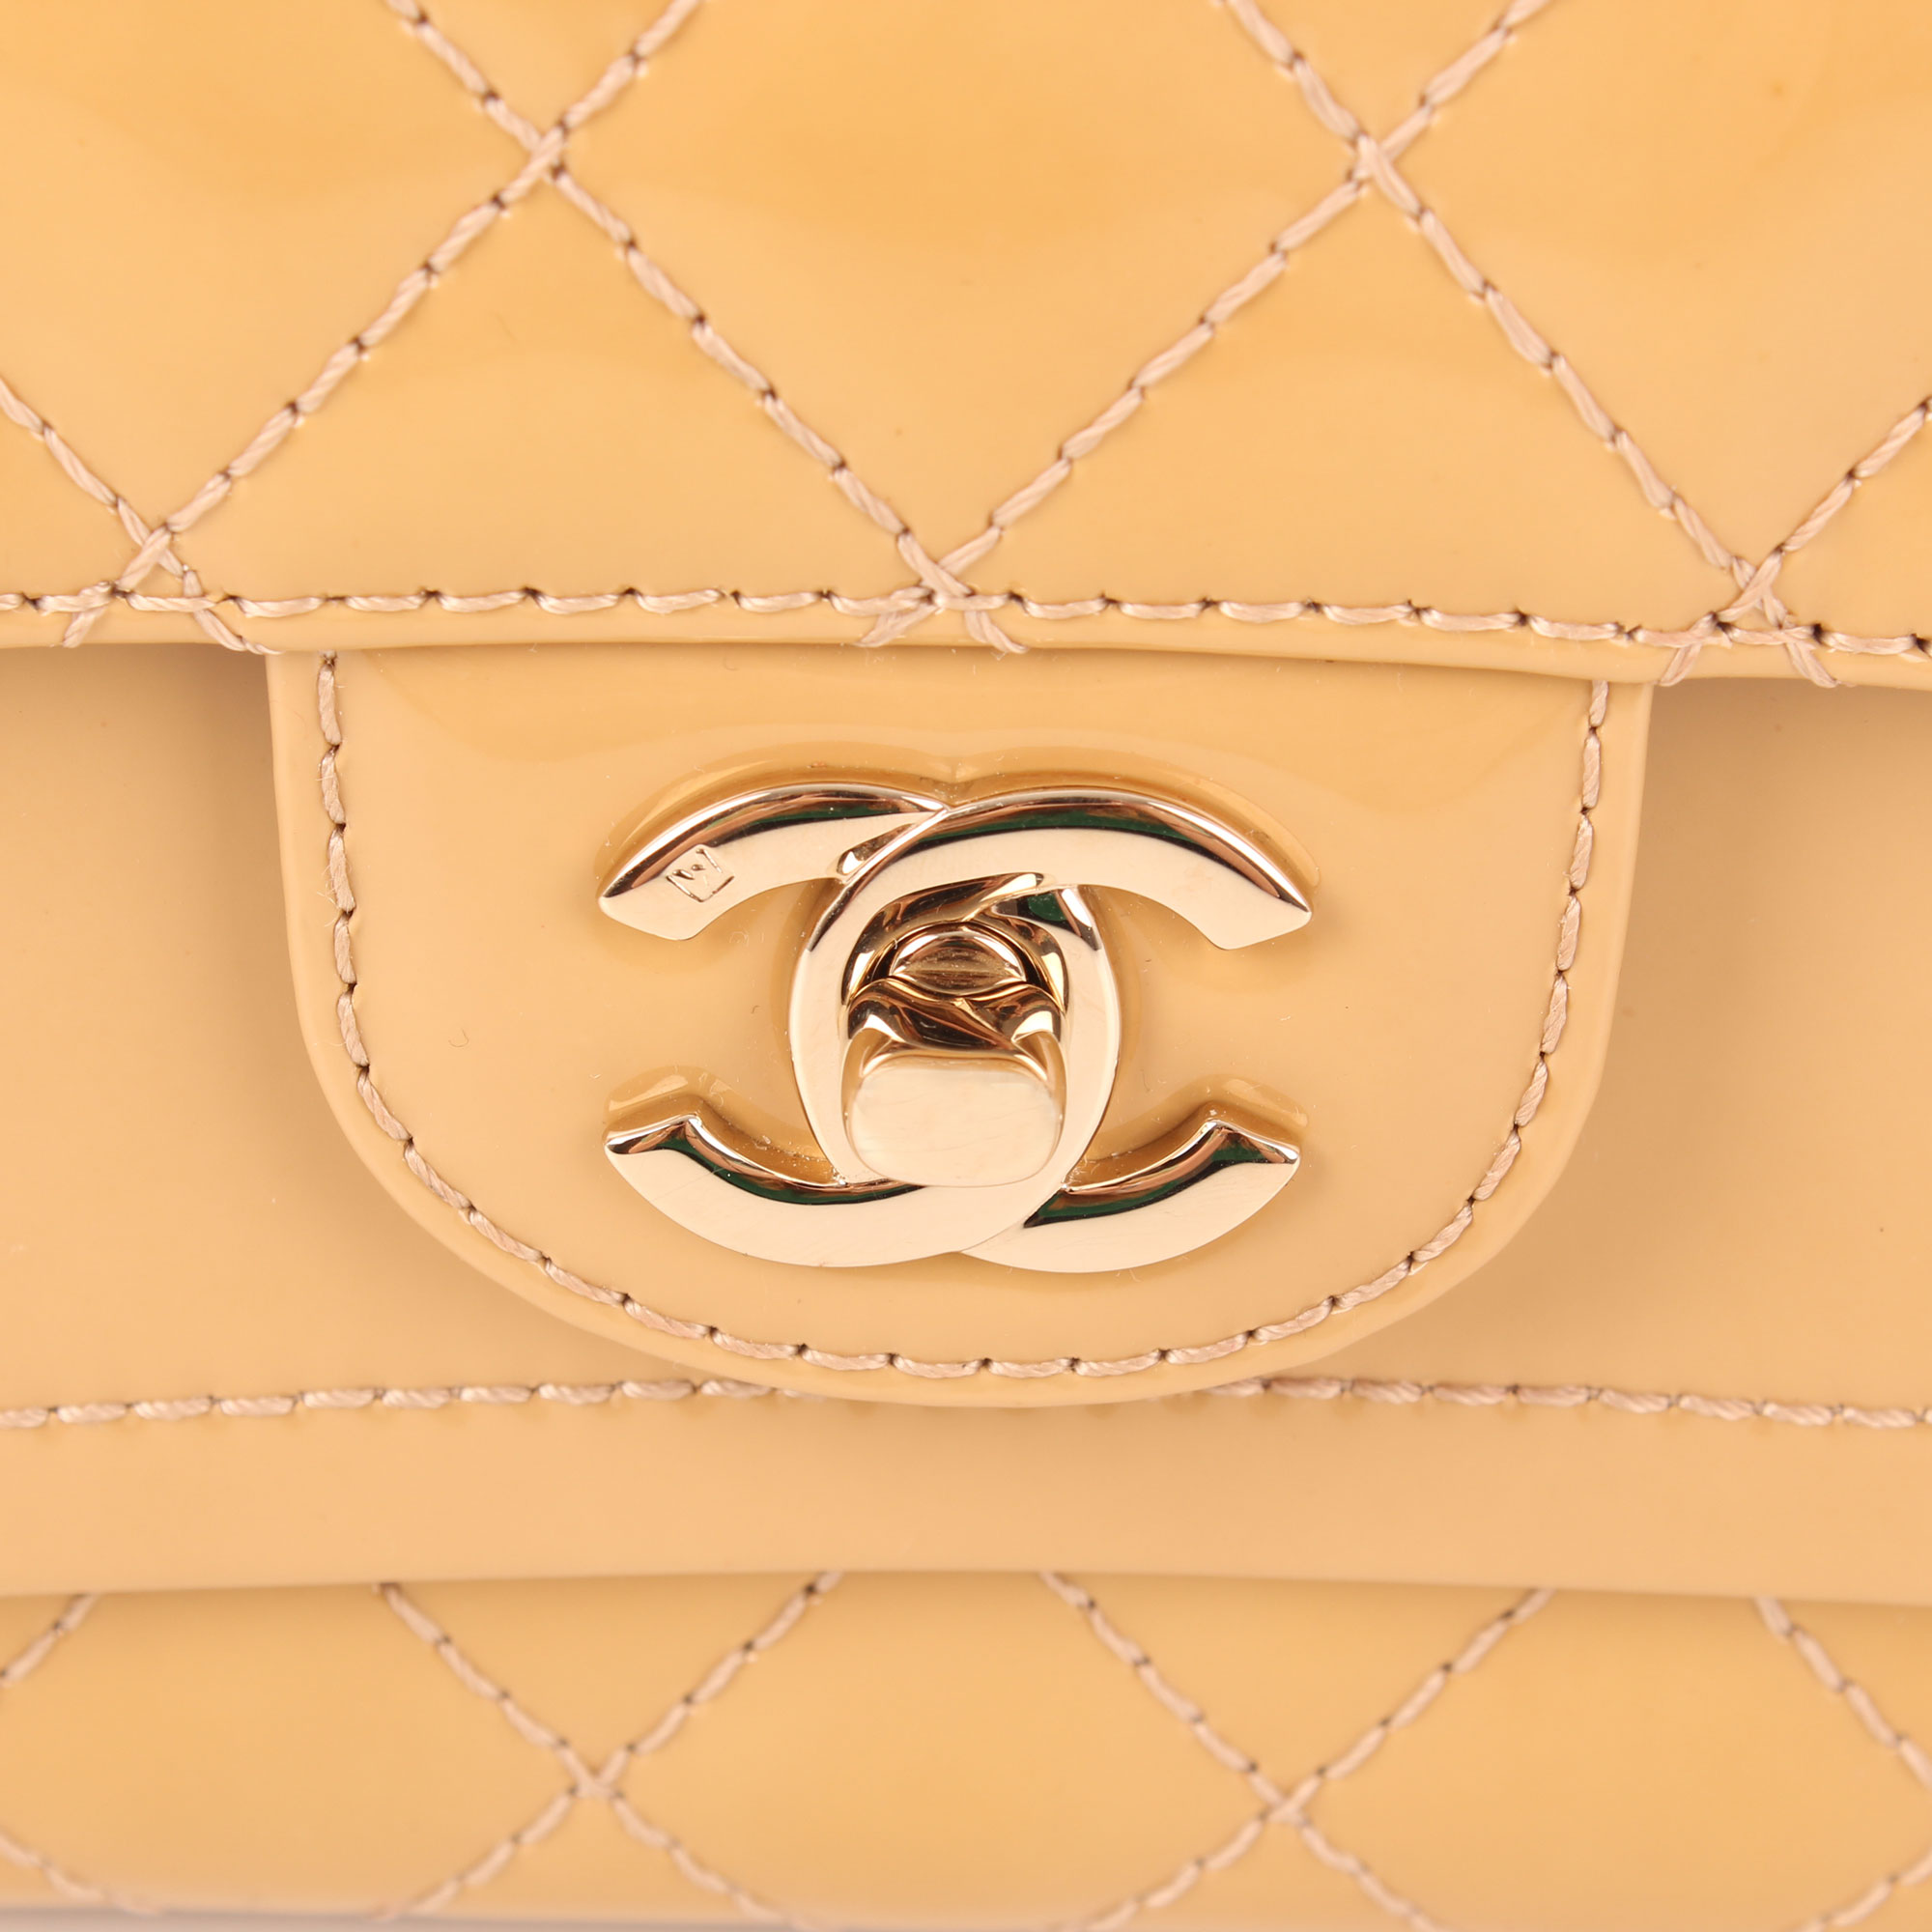 ce589650fd93eb Chanel Timeless Double Flap Bag Patent Leather Yellow